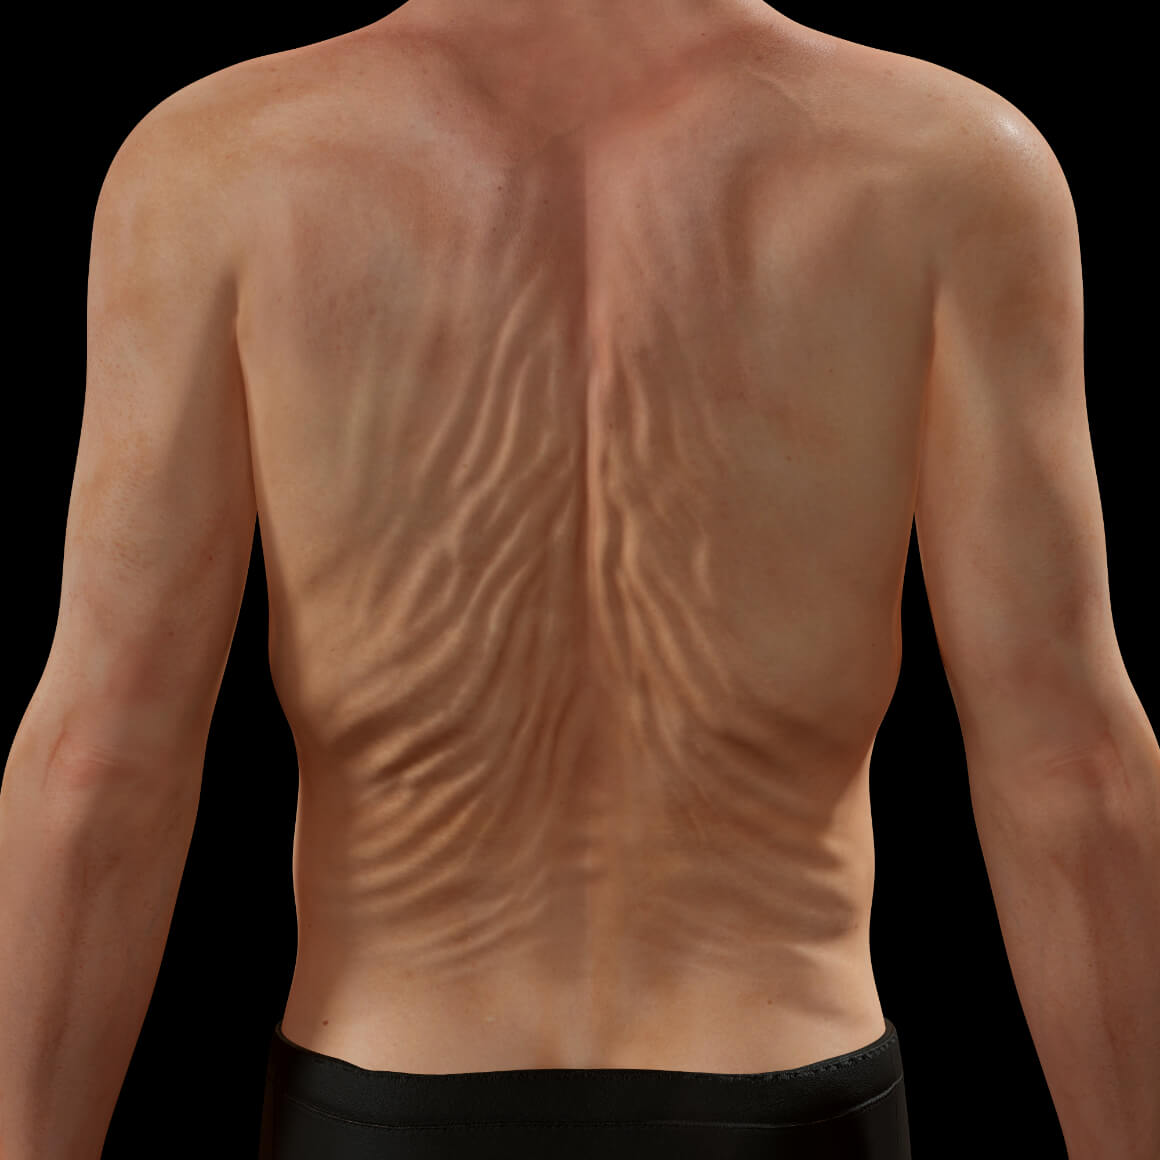 Back of a Clinique Chloé patient showing skin laxity